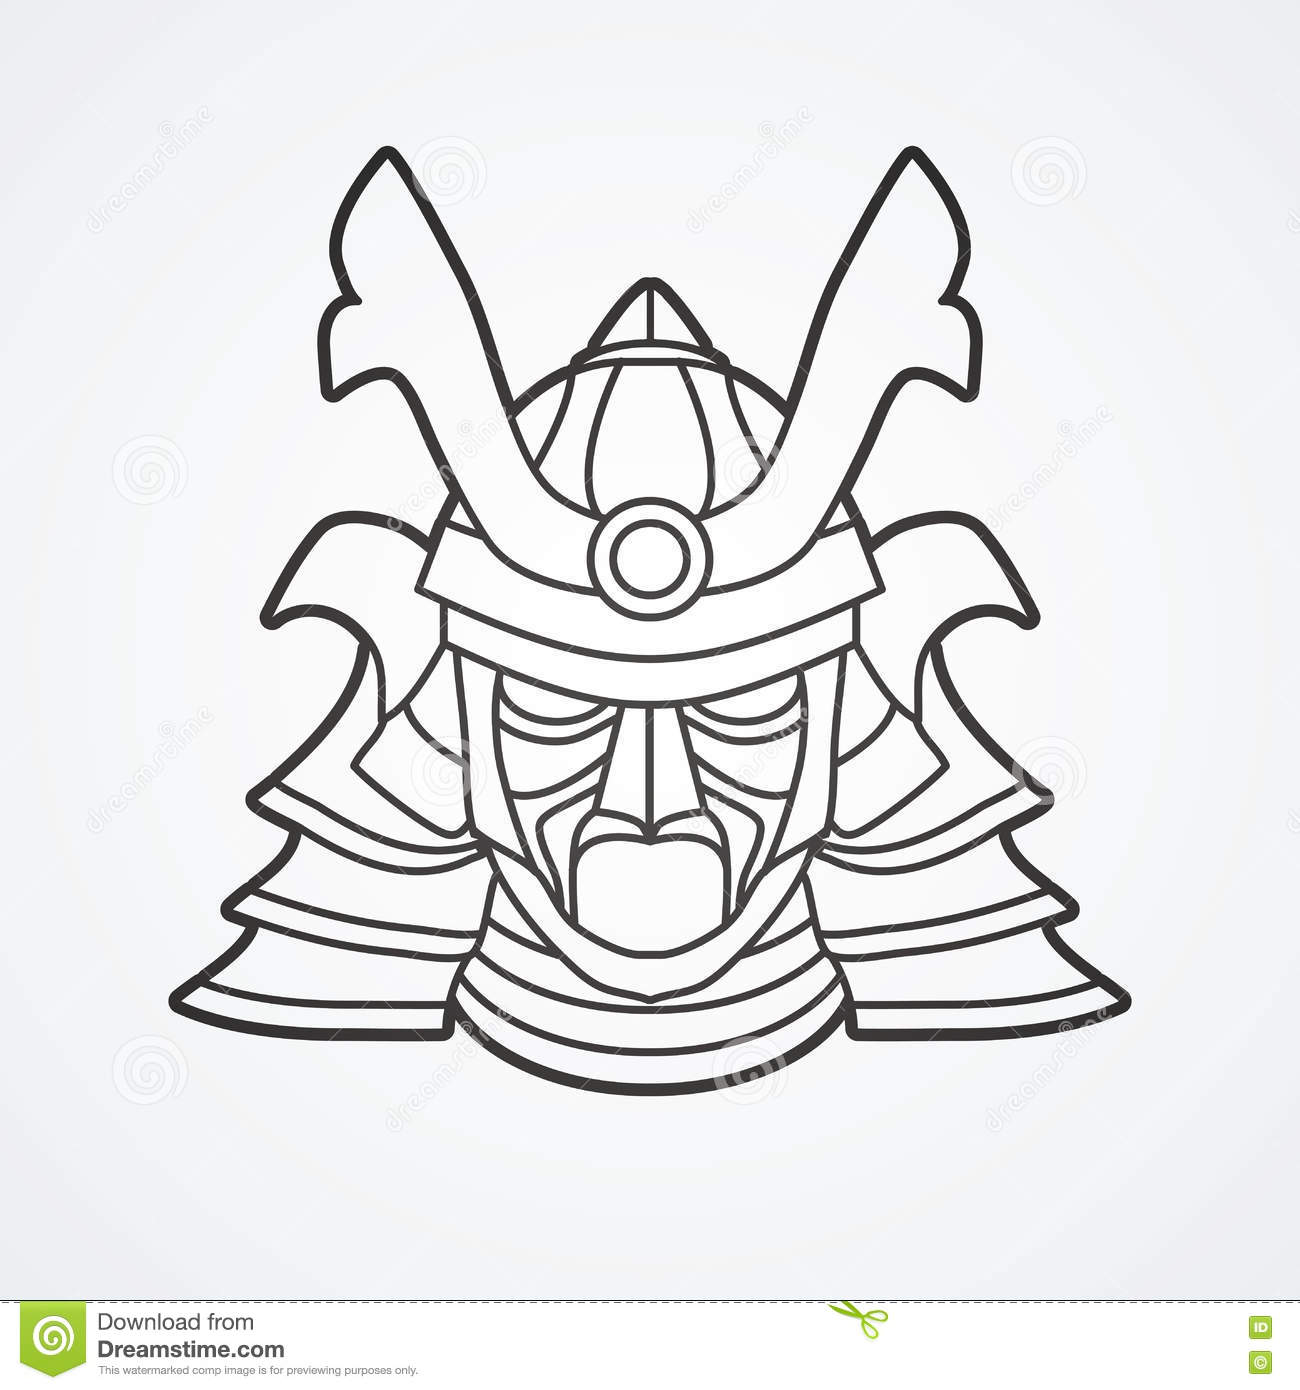 Kabuki mask coloring pages sketch coloring page for Kabuki mask template